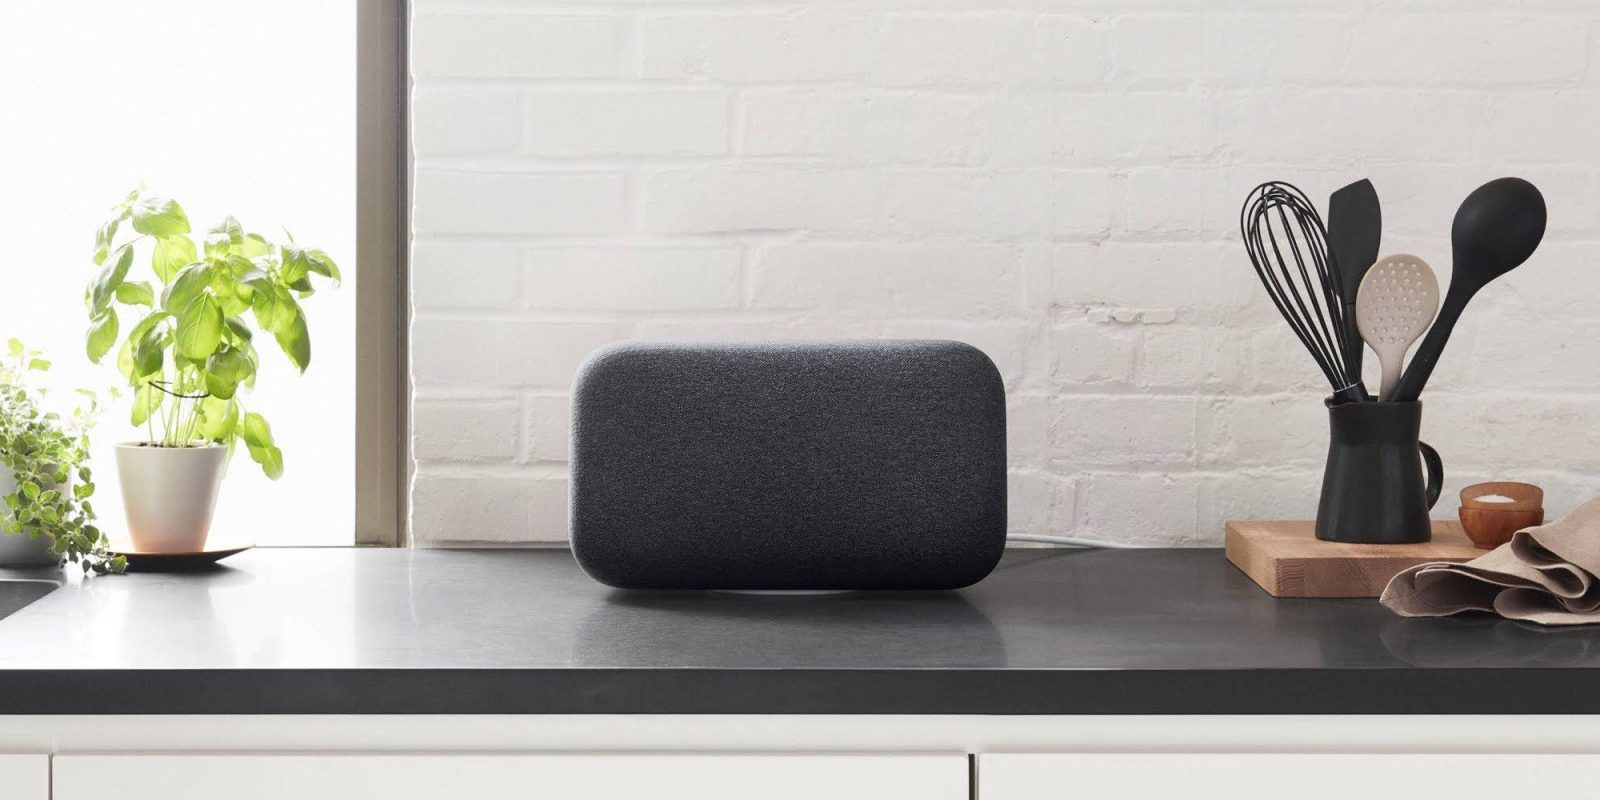 Monday Deals: Google Assistant speakers from $58, Ring Video Doorbell $68, more